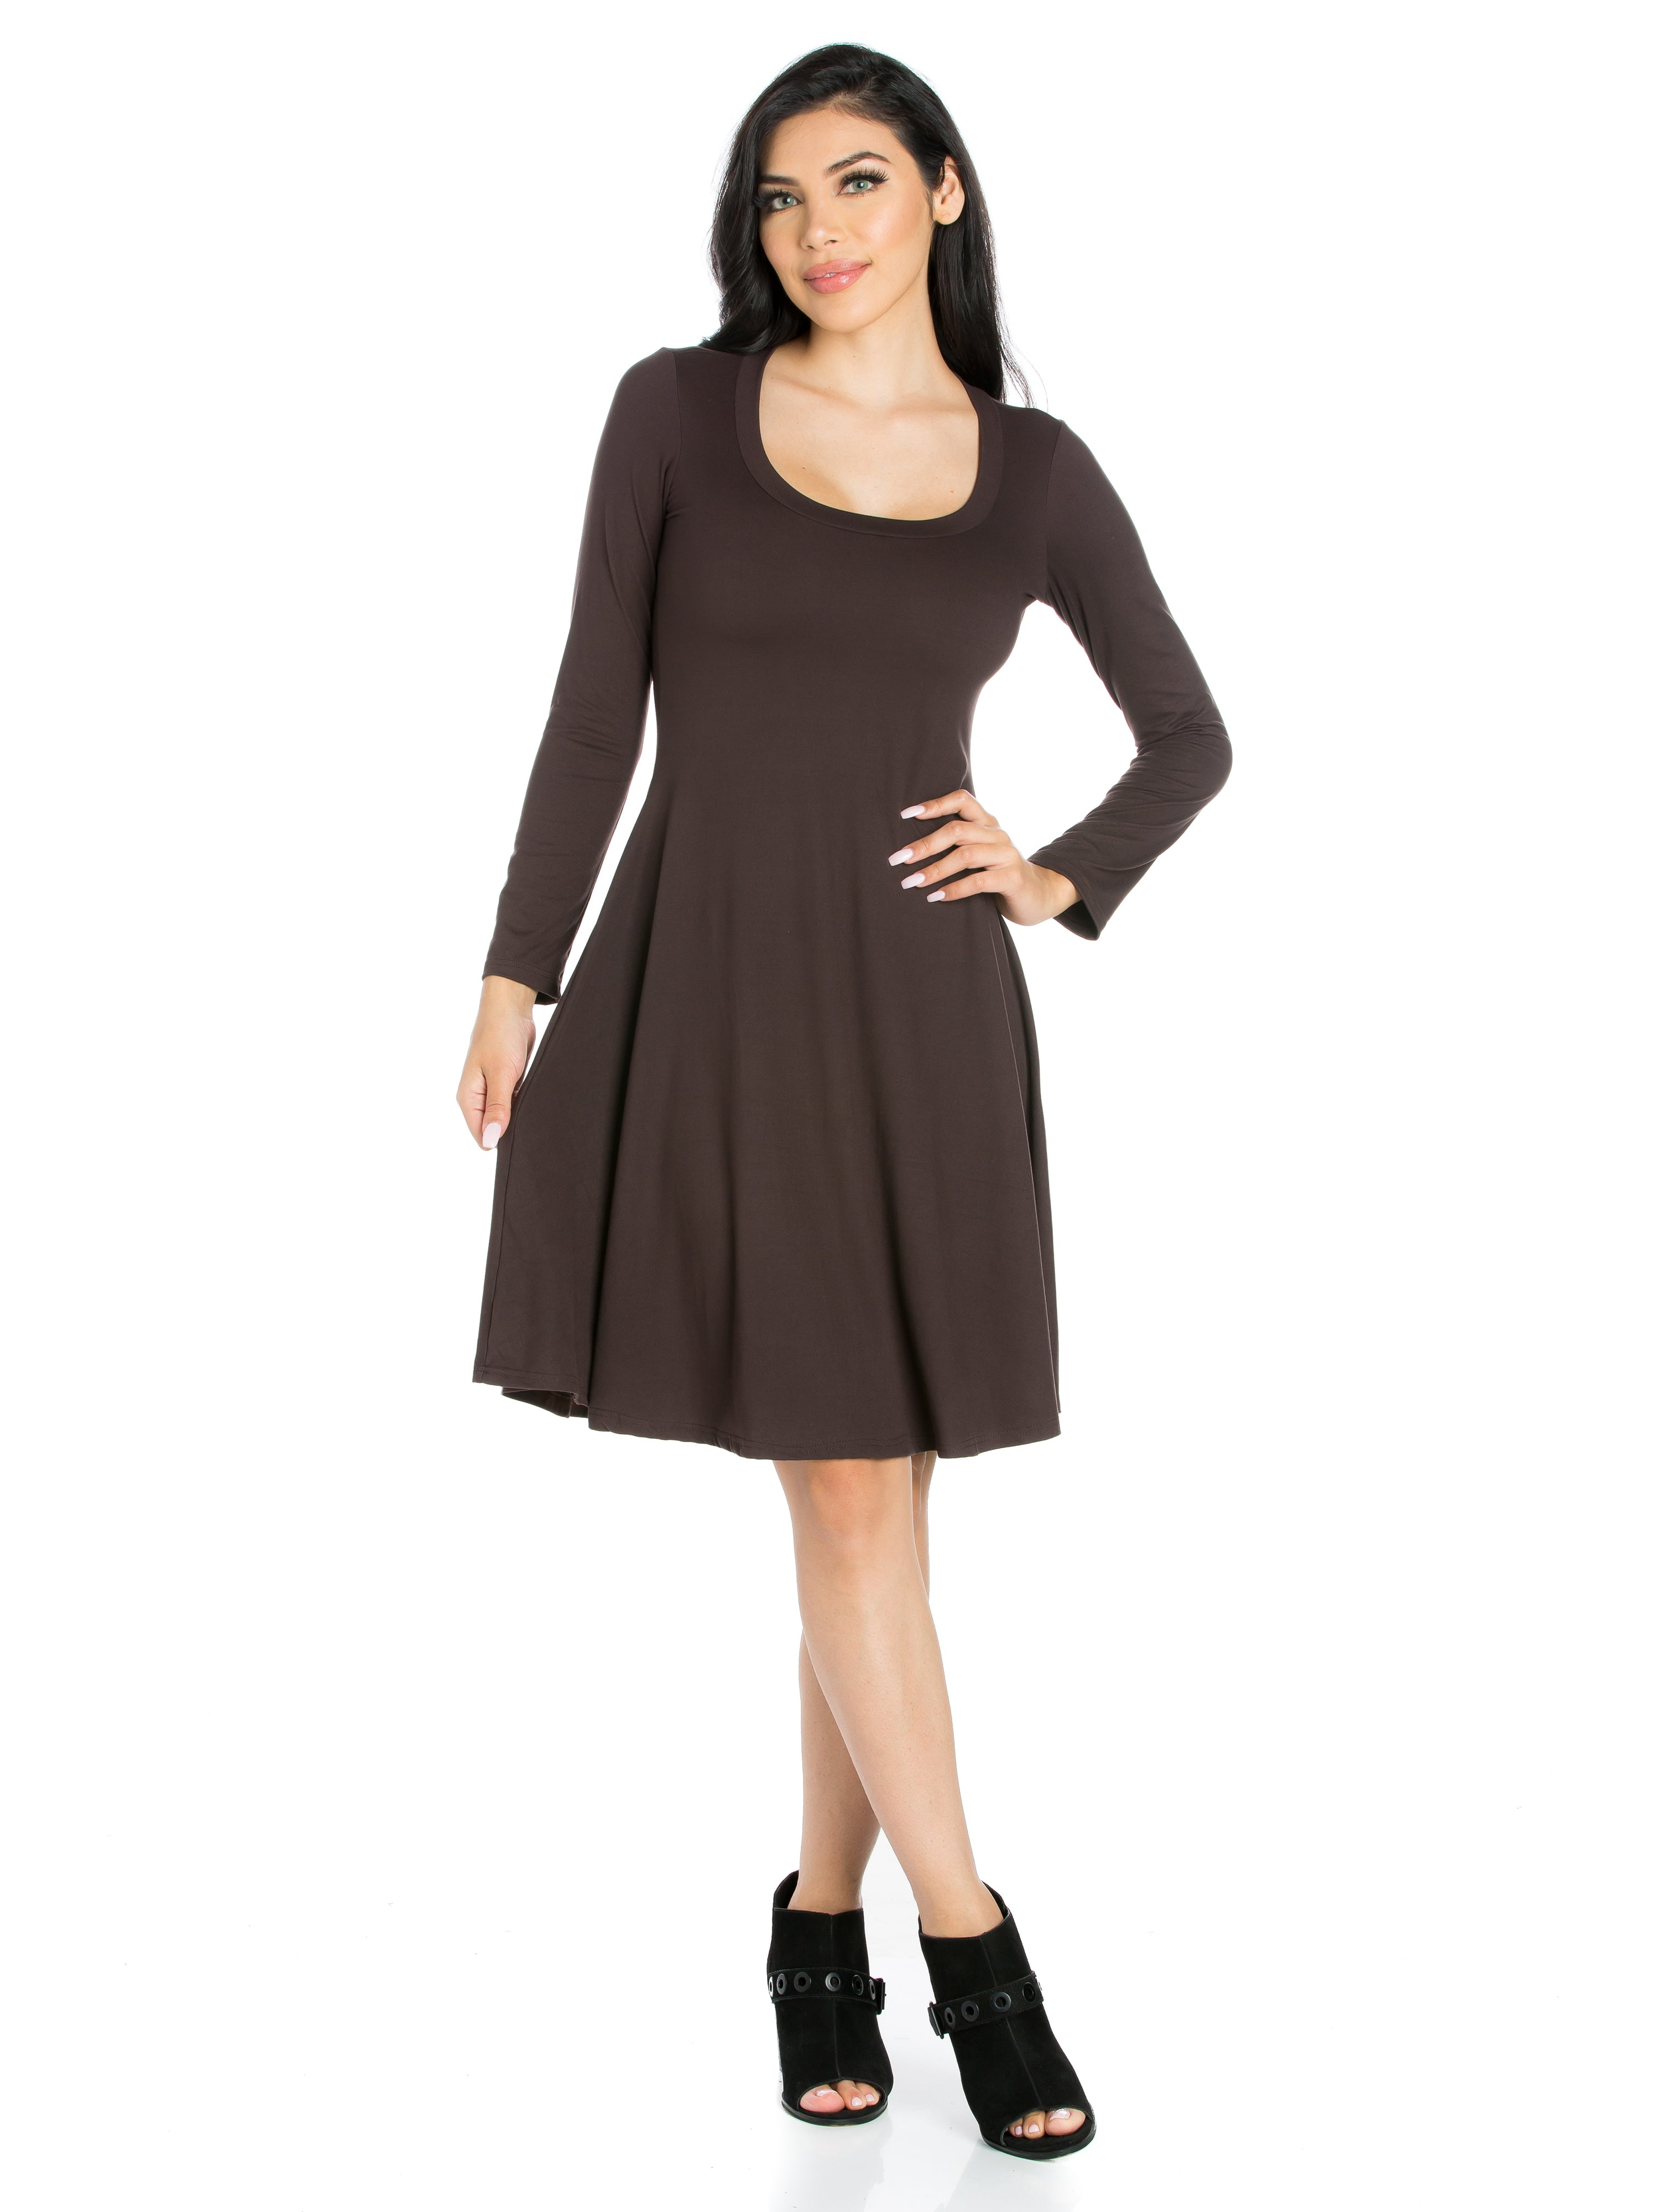 24seven Comfort Apparel Classic Long Sleeve Flared Mini Dress-Dresses-24Seven Comfort Apparel-BROWN-S-24/7 Comfort Apparel